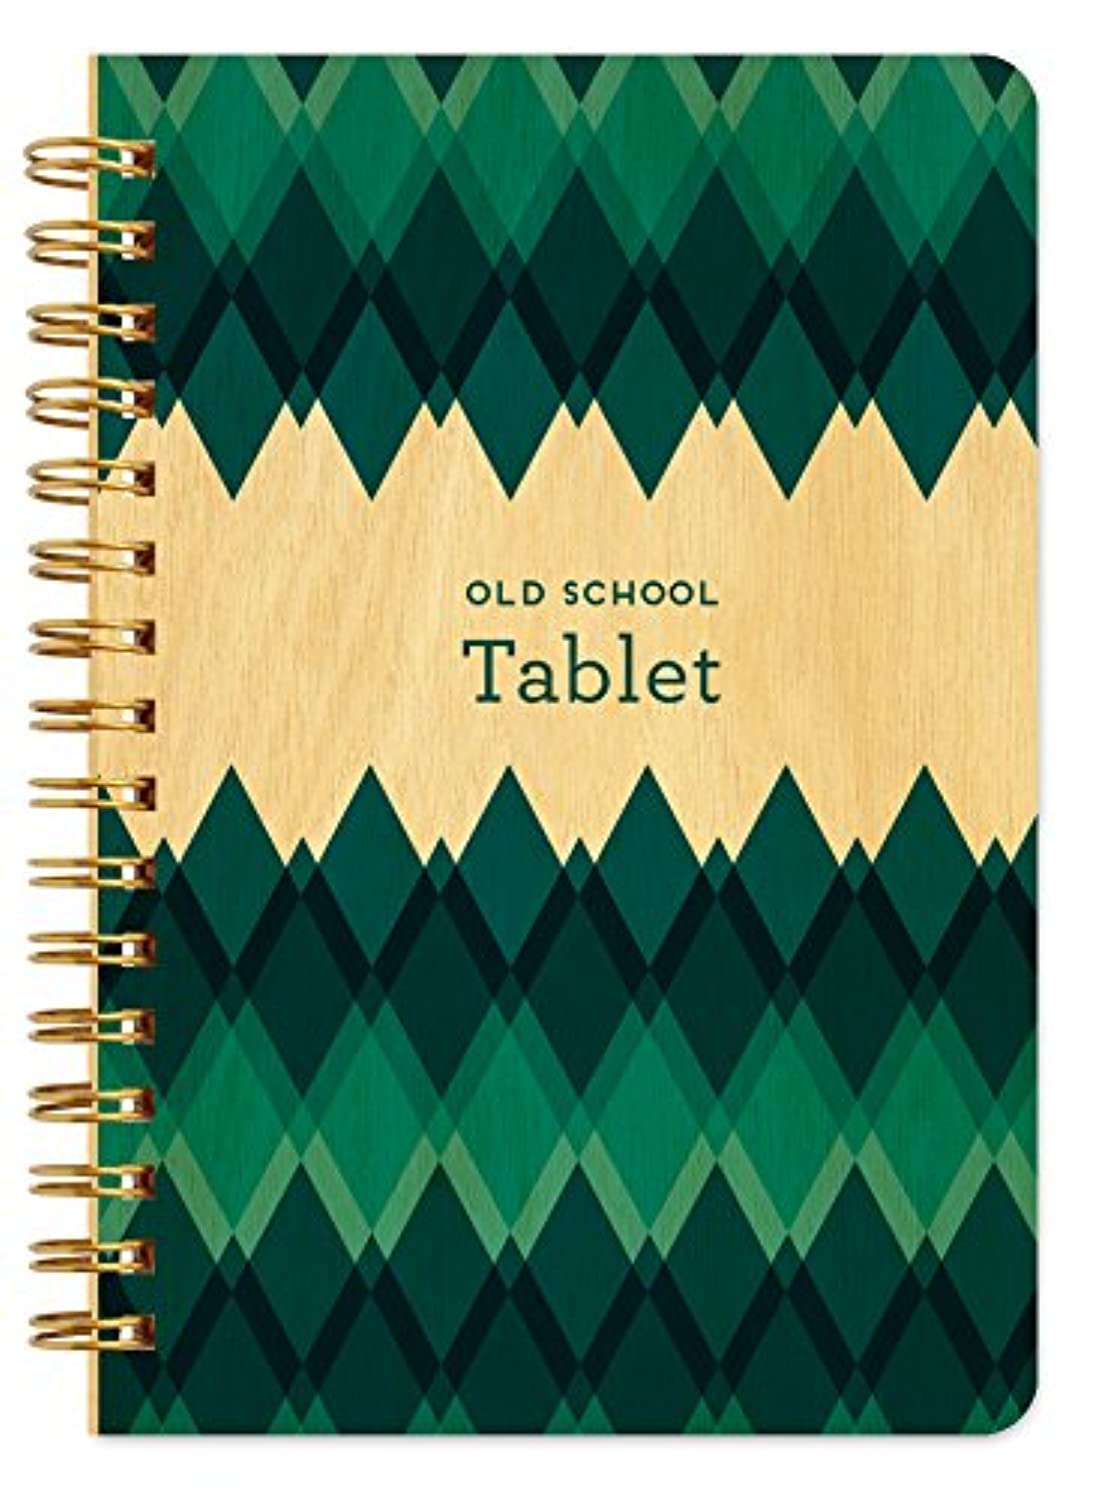 Old School Tablet Pocket-Size Wooden Notebook By Night Owl Paper Goods